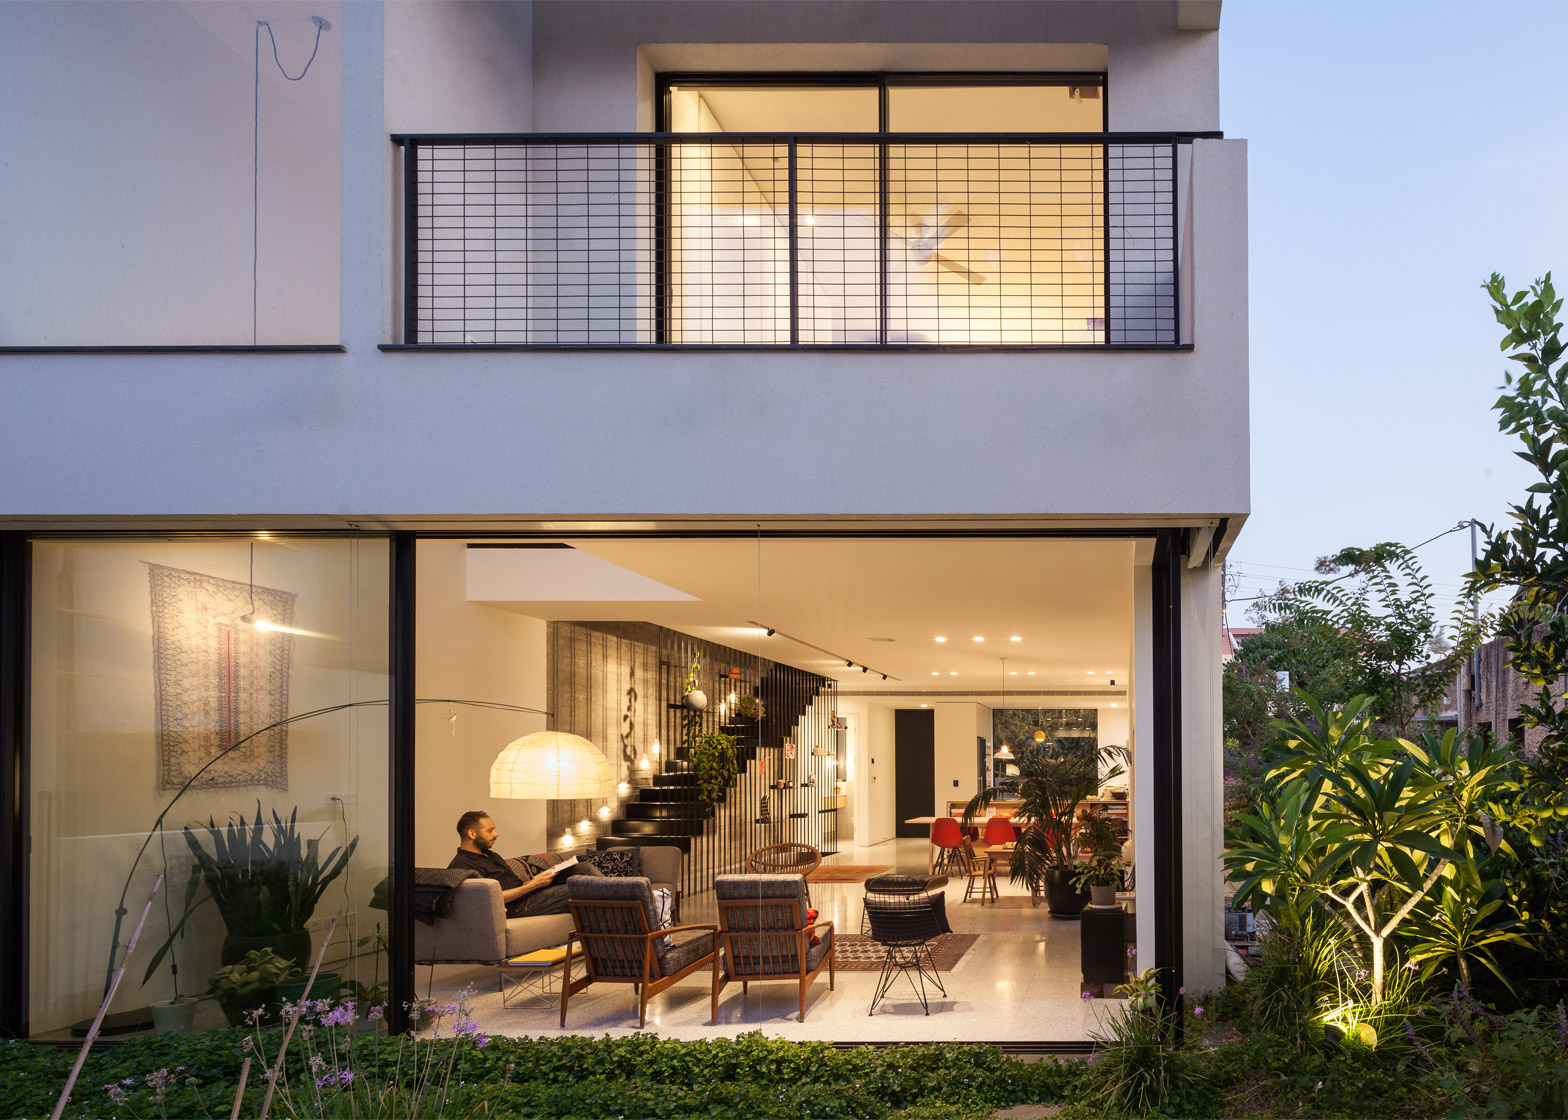 Mendelkern townhouse in Tel-Aviv by David Lebenthal Architects